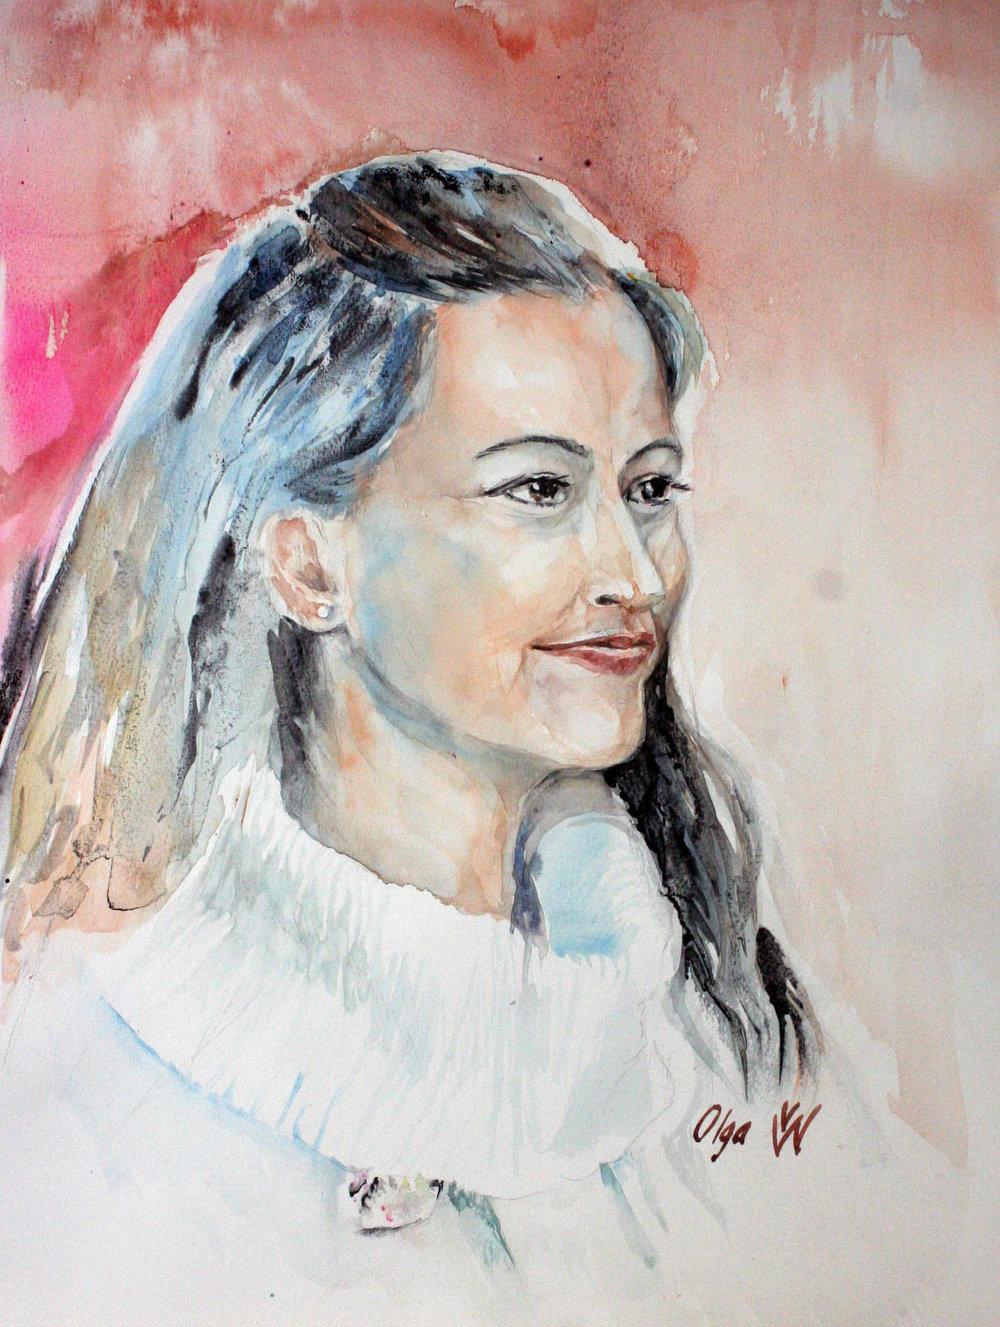 Olga Weinstein did this watercolor.